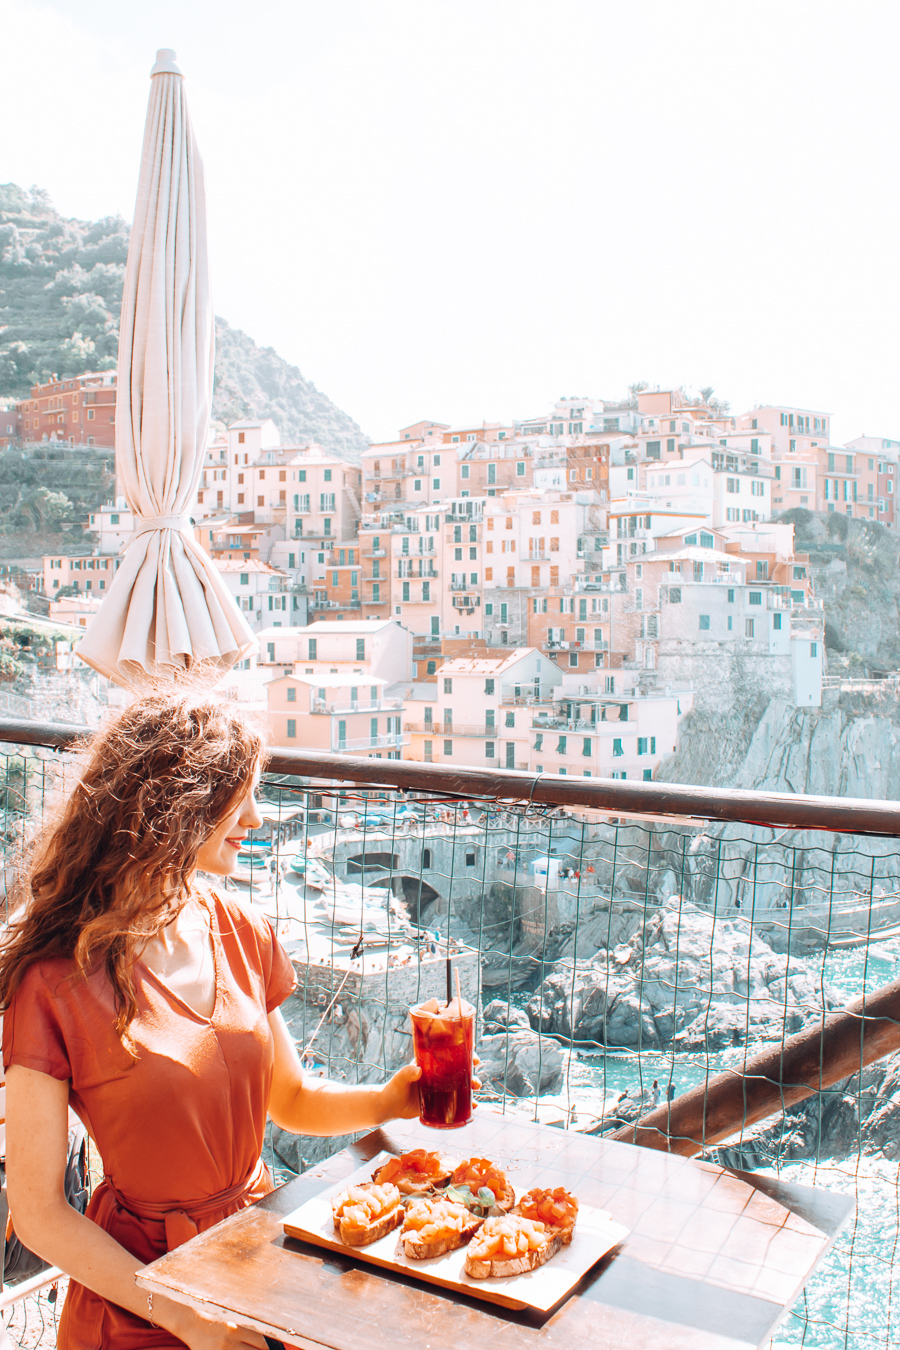 Food and a view at Nessun Dorma in Cinque Terre